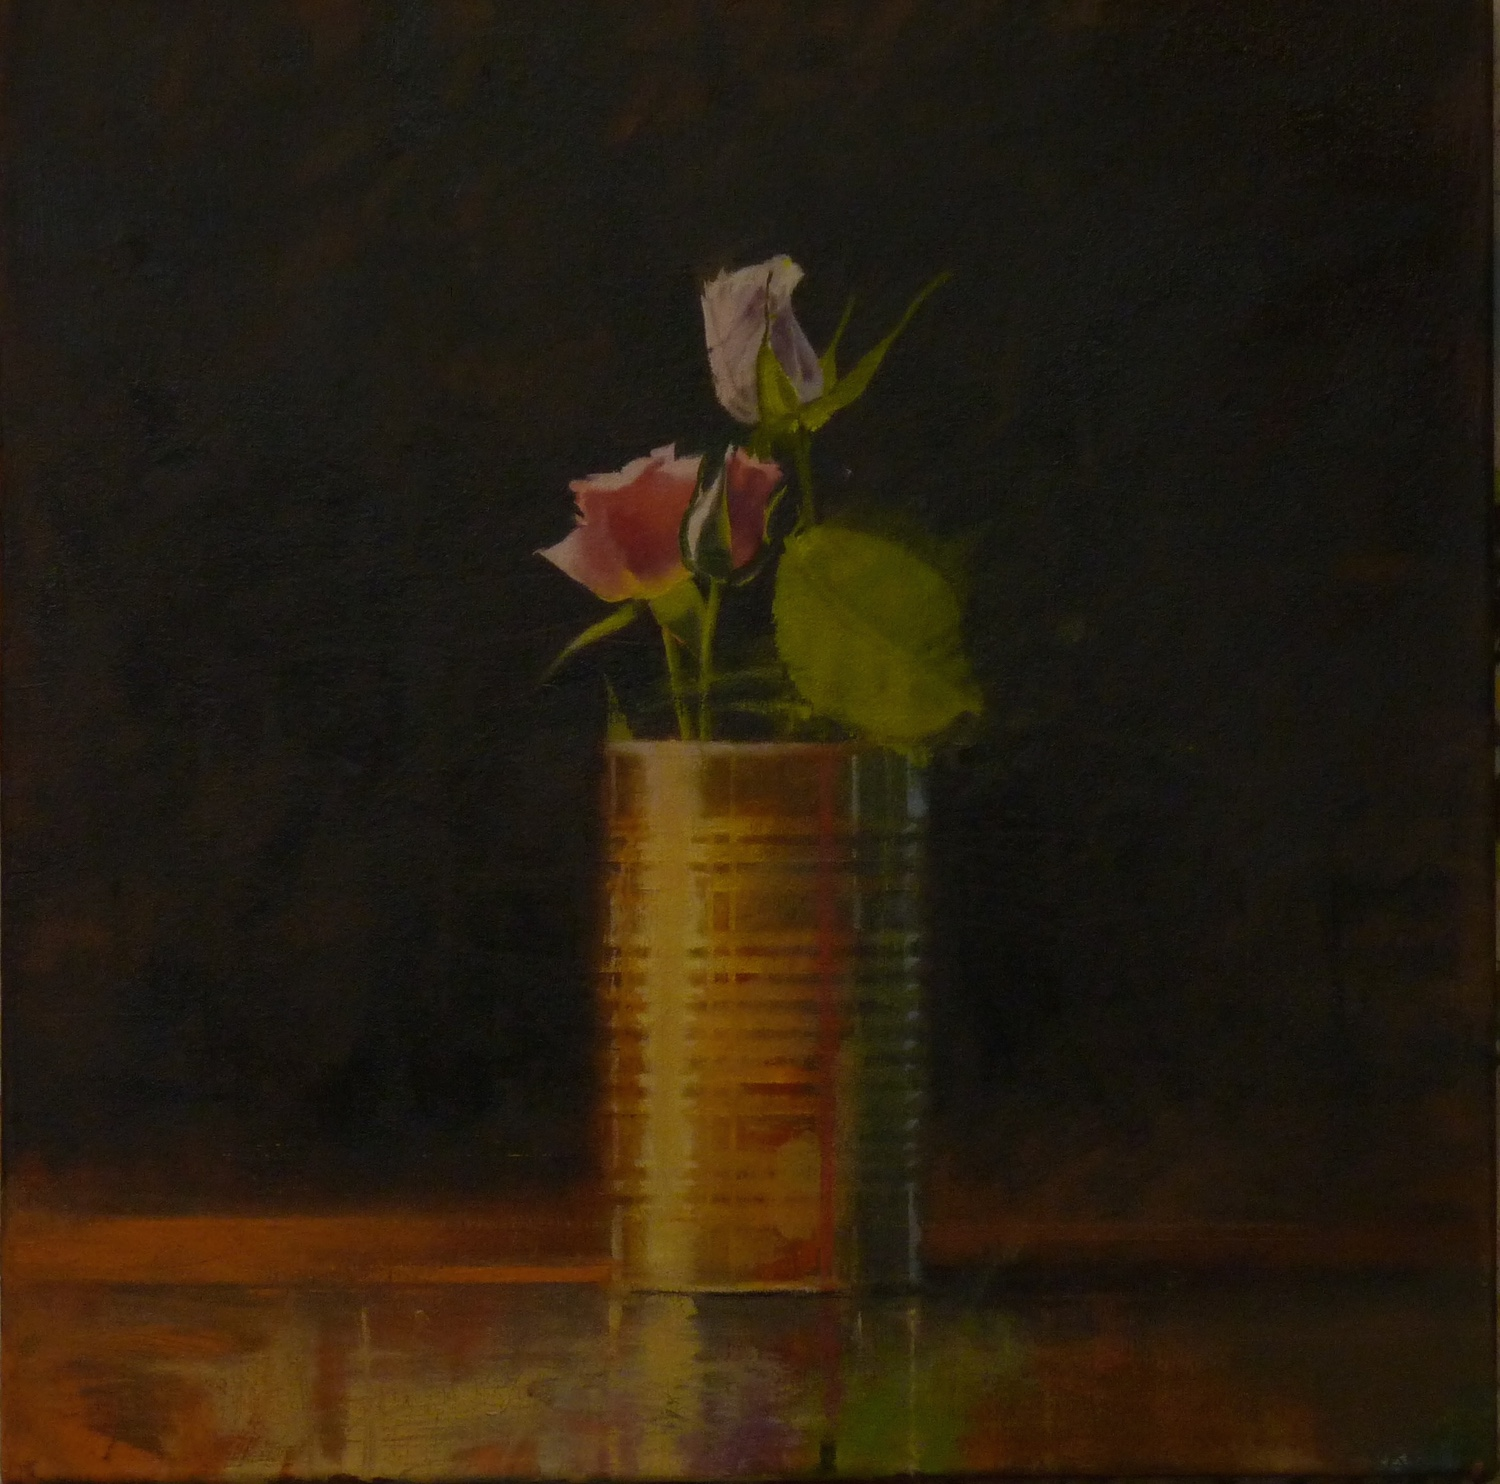 Canned Roses,  sold  24 x 24, oil on canvas